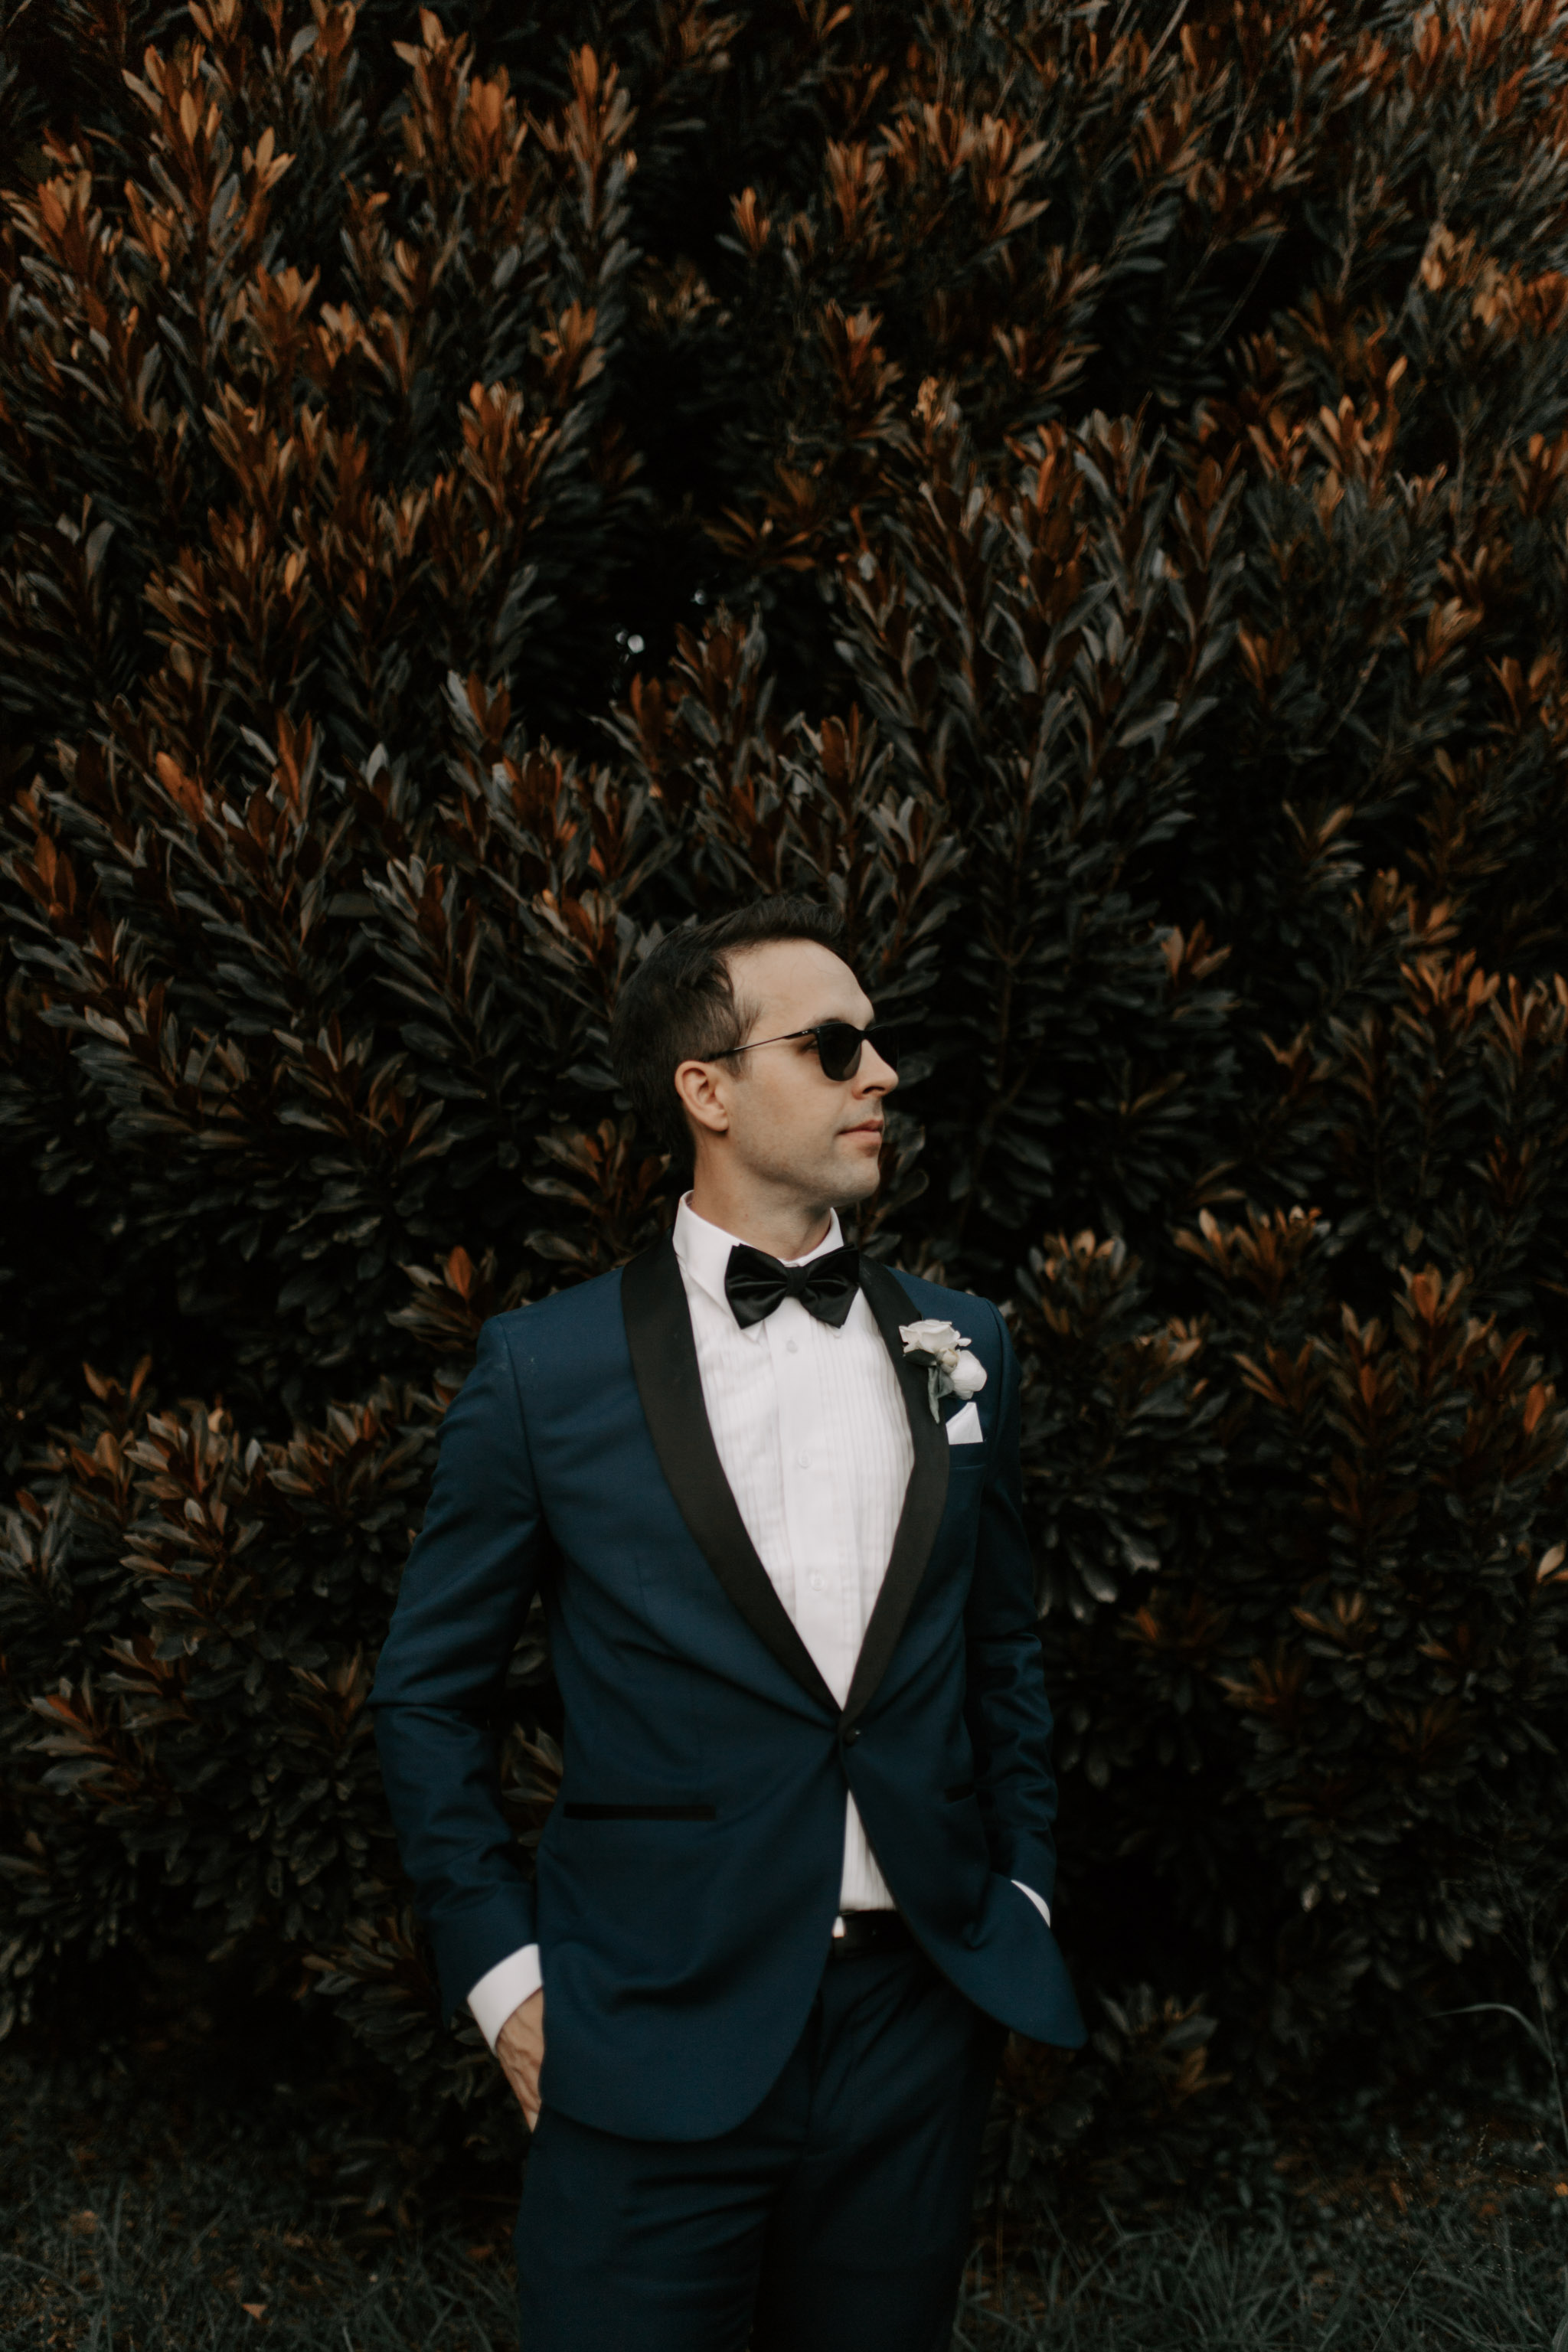 Groom Portrait Idea By Hawaii Wedding Photographer Desiree Leilani